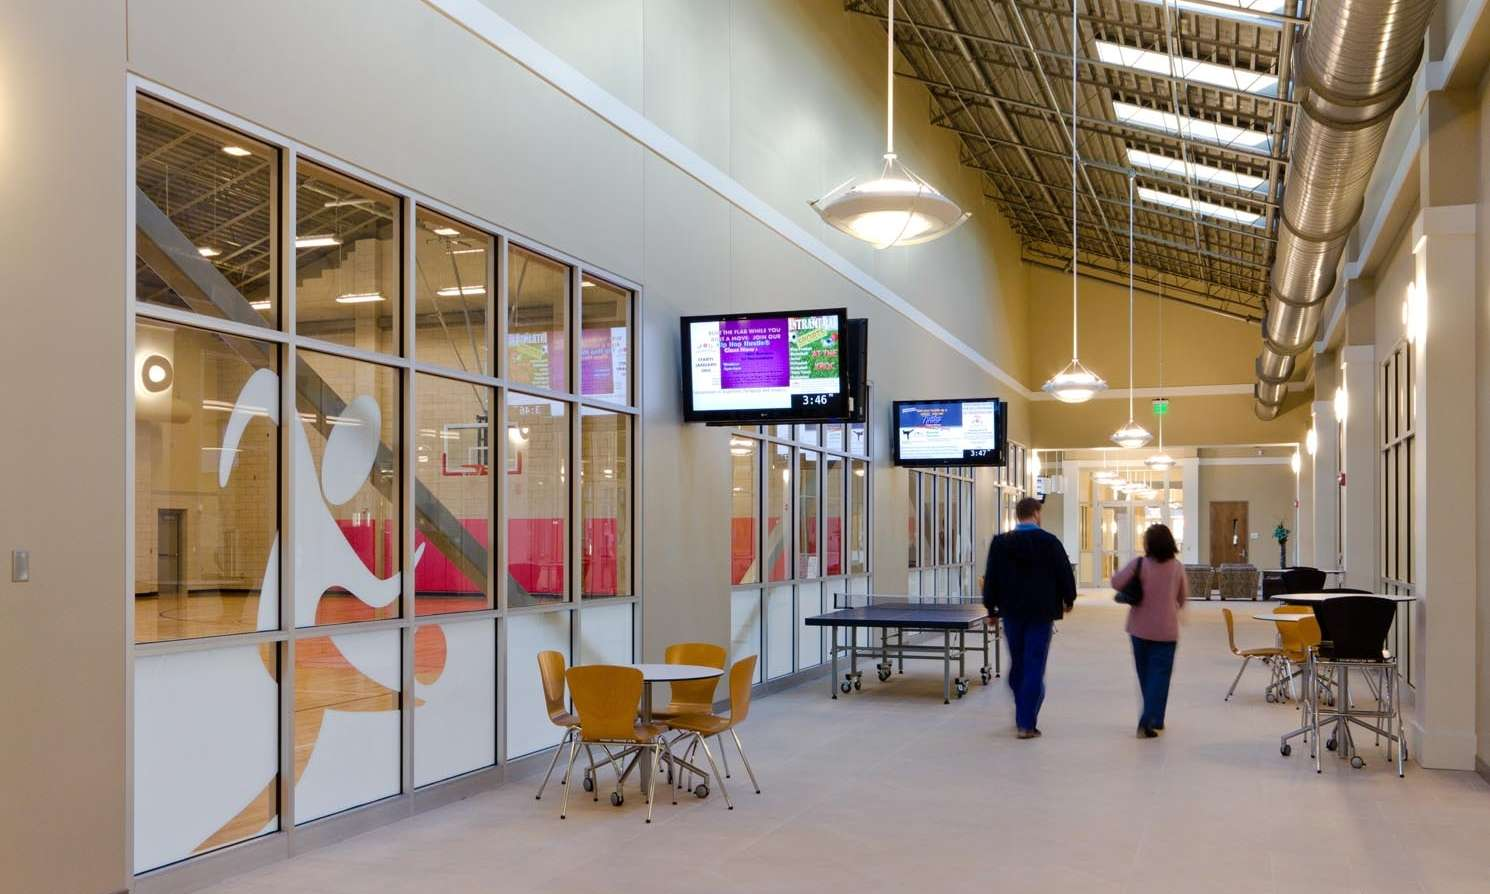 The Salvation Army's Ray & Joan Kroc Corps Community Center